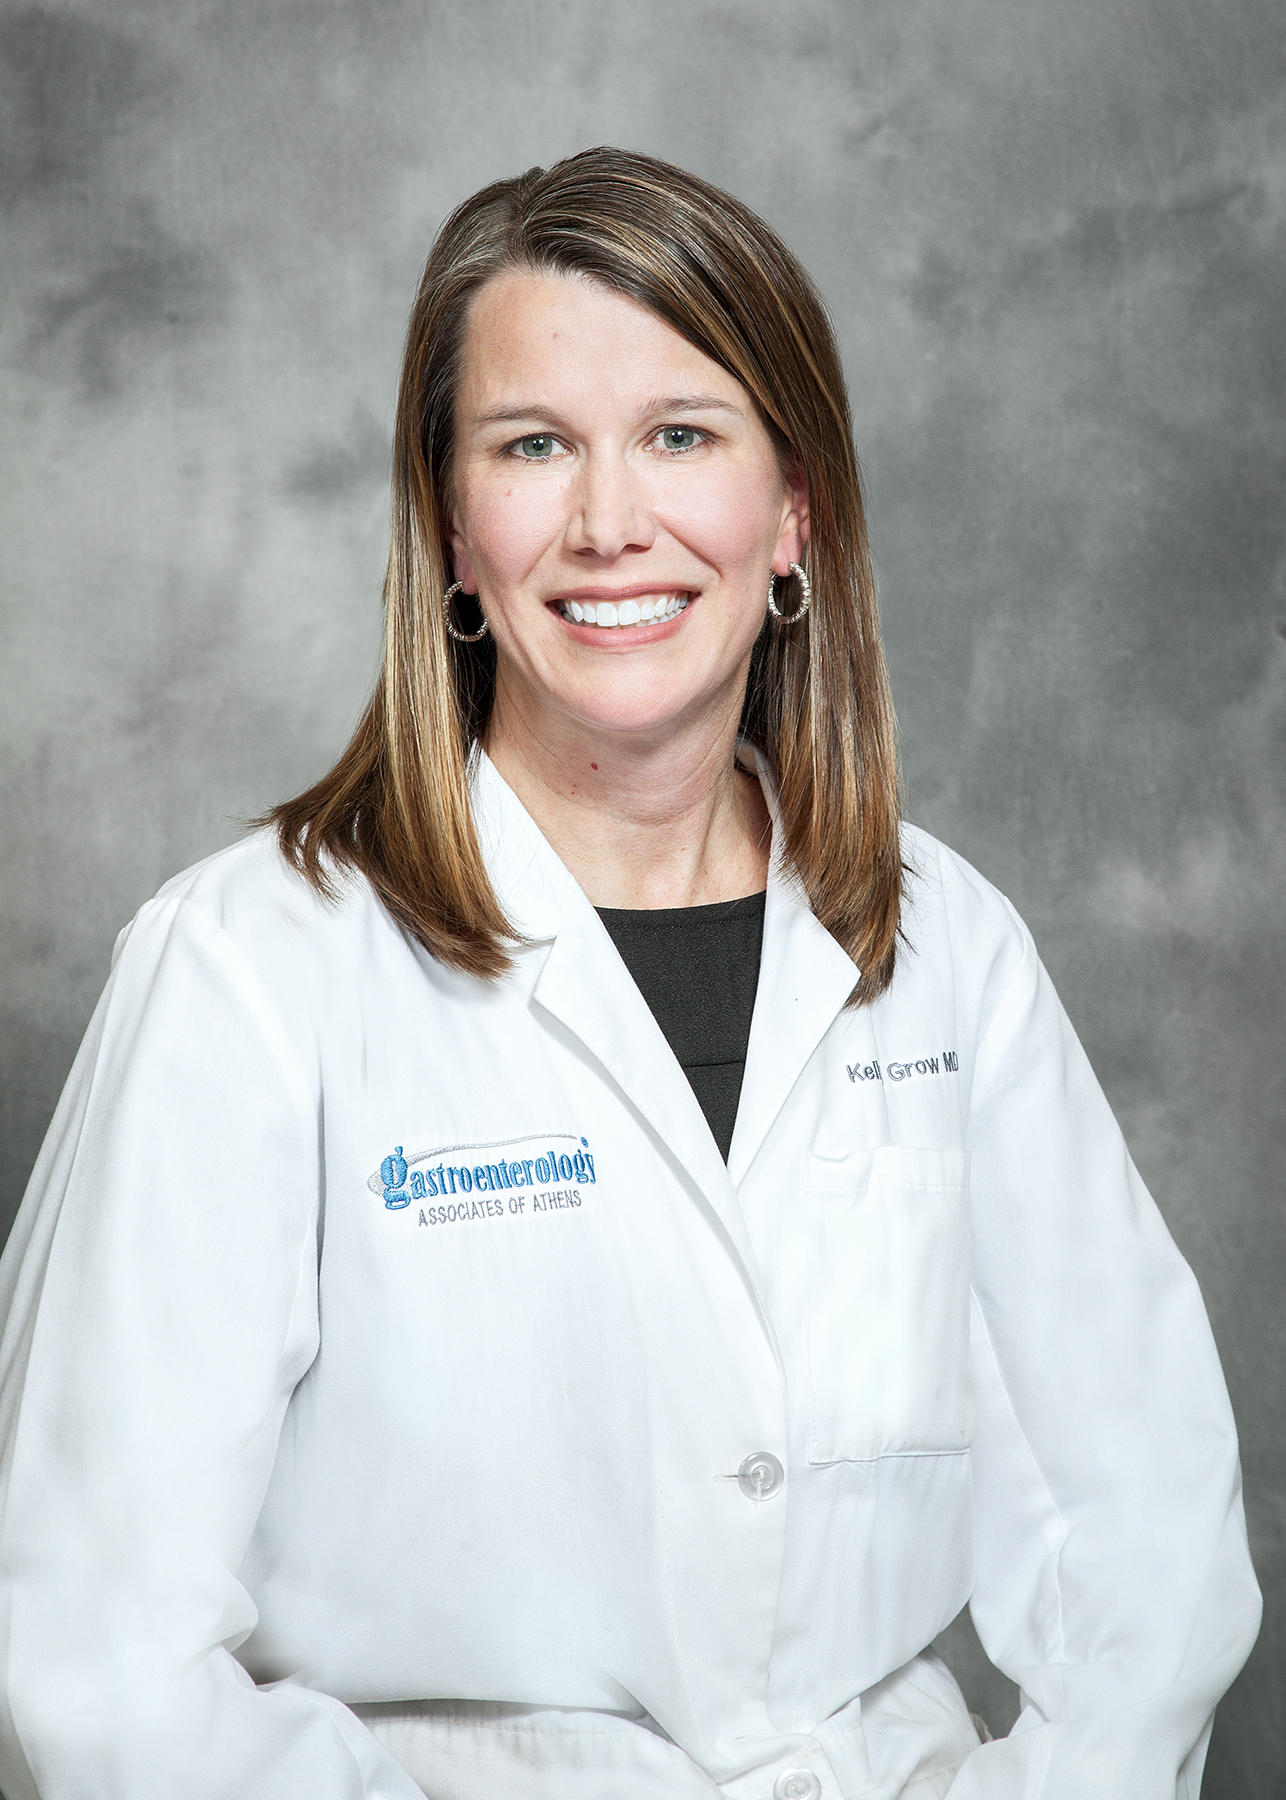 Kelly Grow, MD